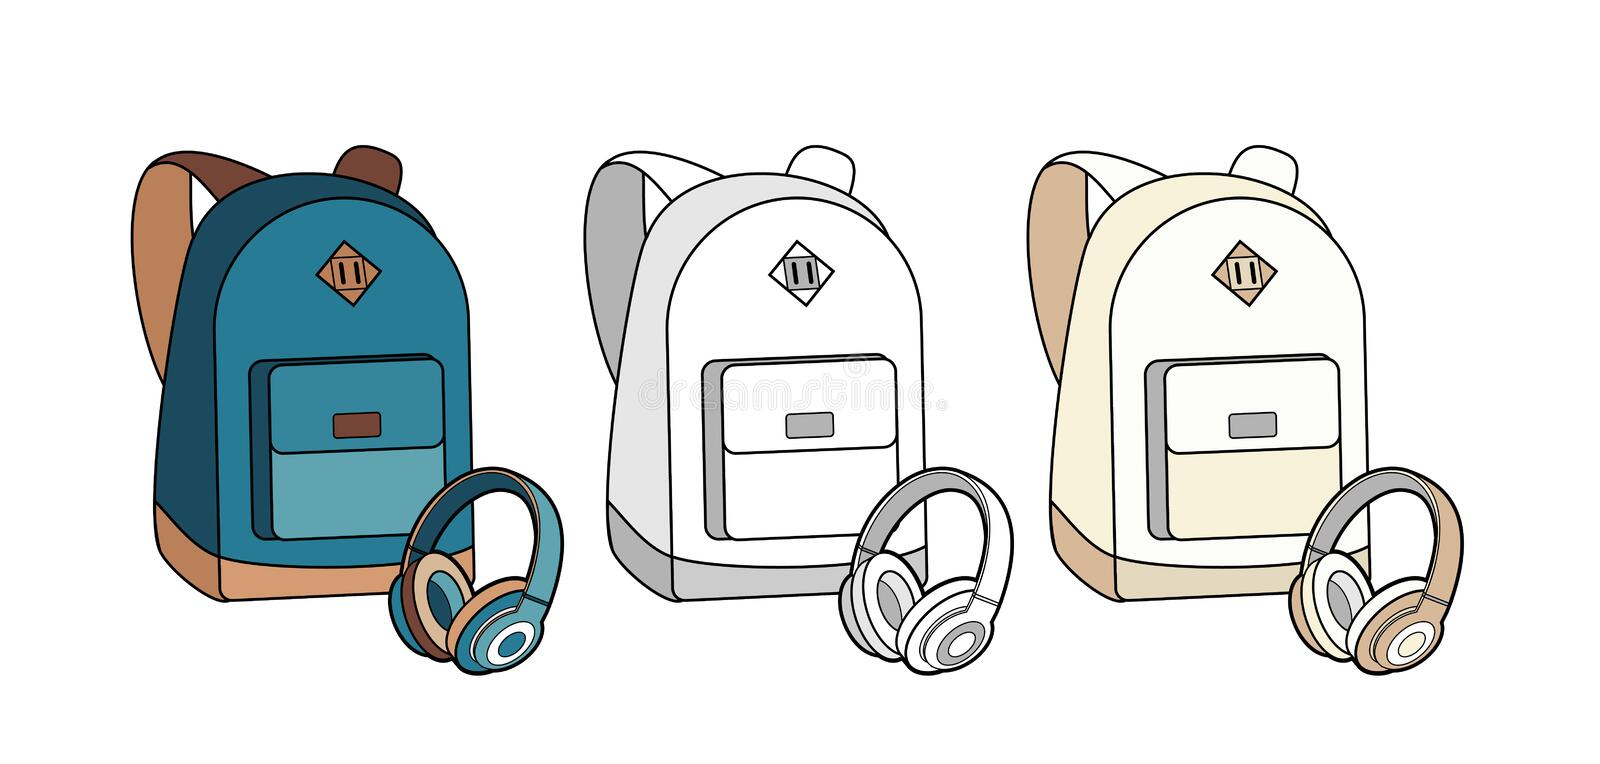 Backpack, bag, rucksack and headphones vector isolated set. Youth fashion hipster knapsack illustration in minimalist style. vector illustration